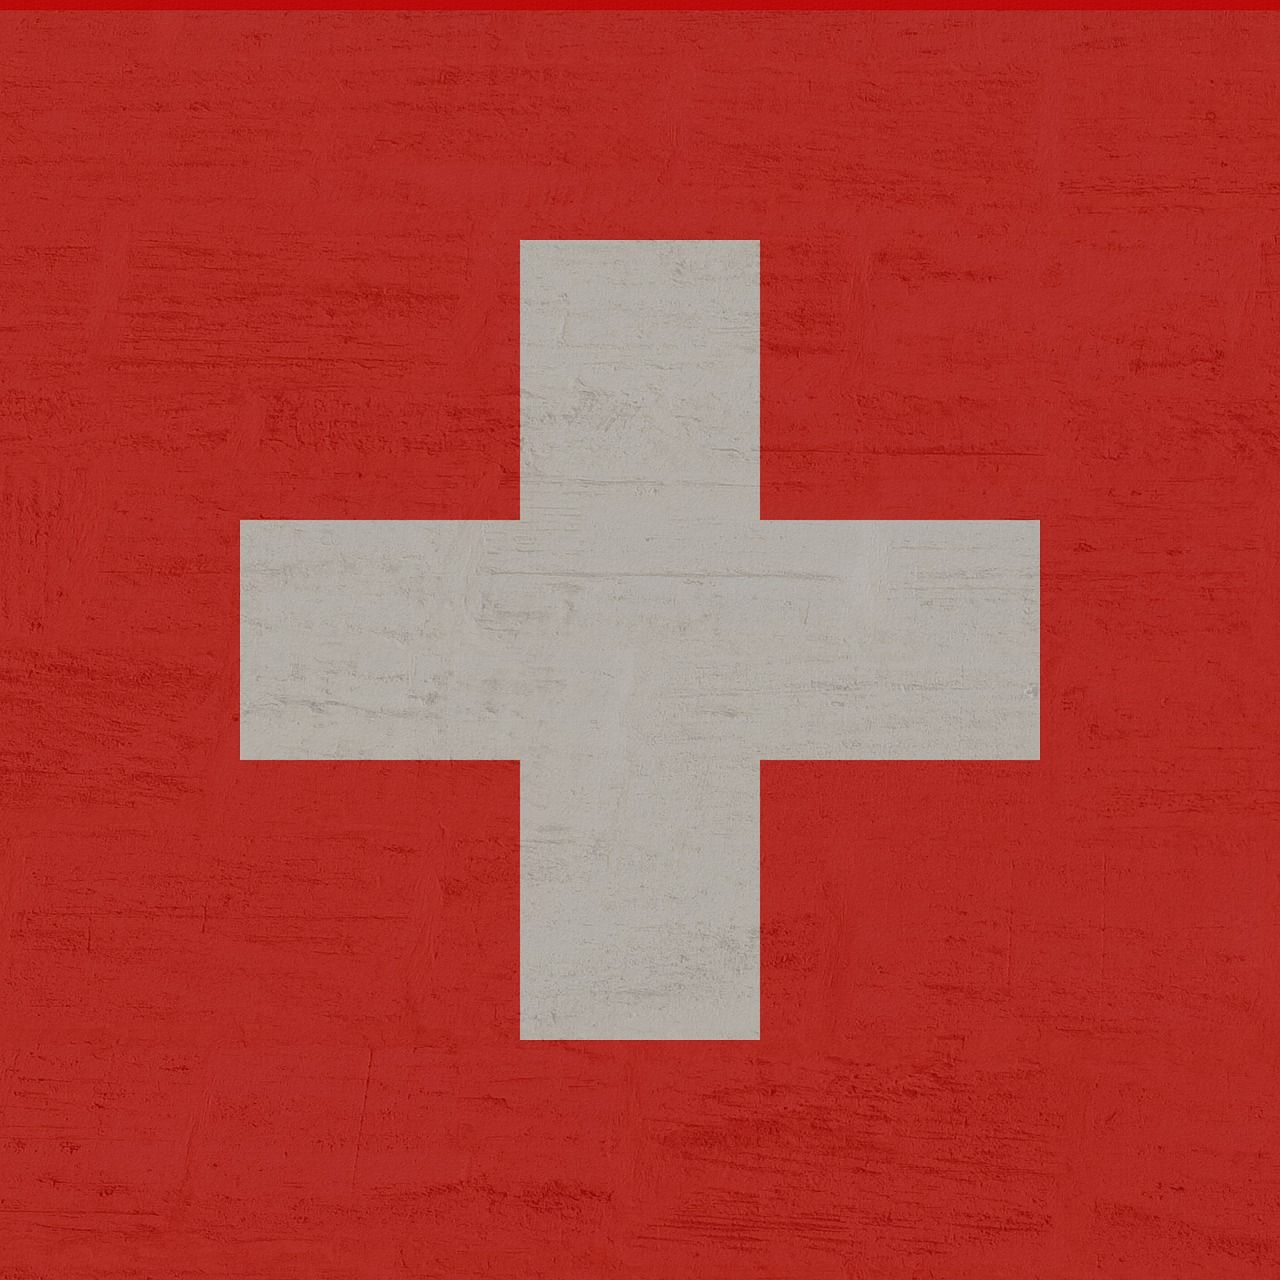 Switzerland Switzerland Swiss Flag Flag Switzerland Switzerland Swissflag Flag Swiss Flag Flag Tourist Attraction